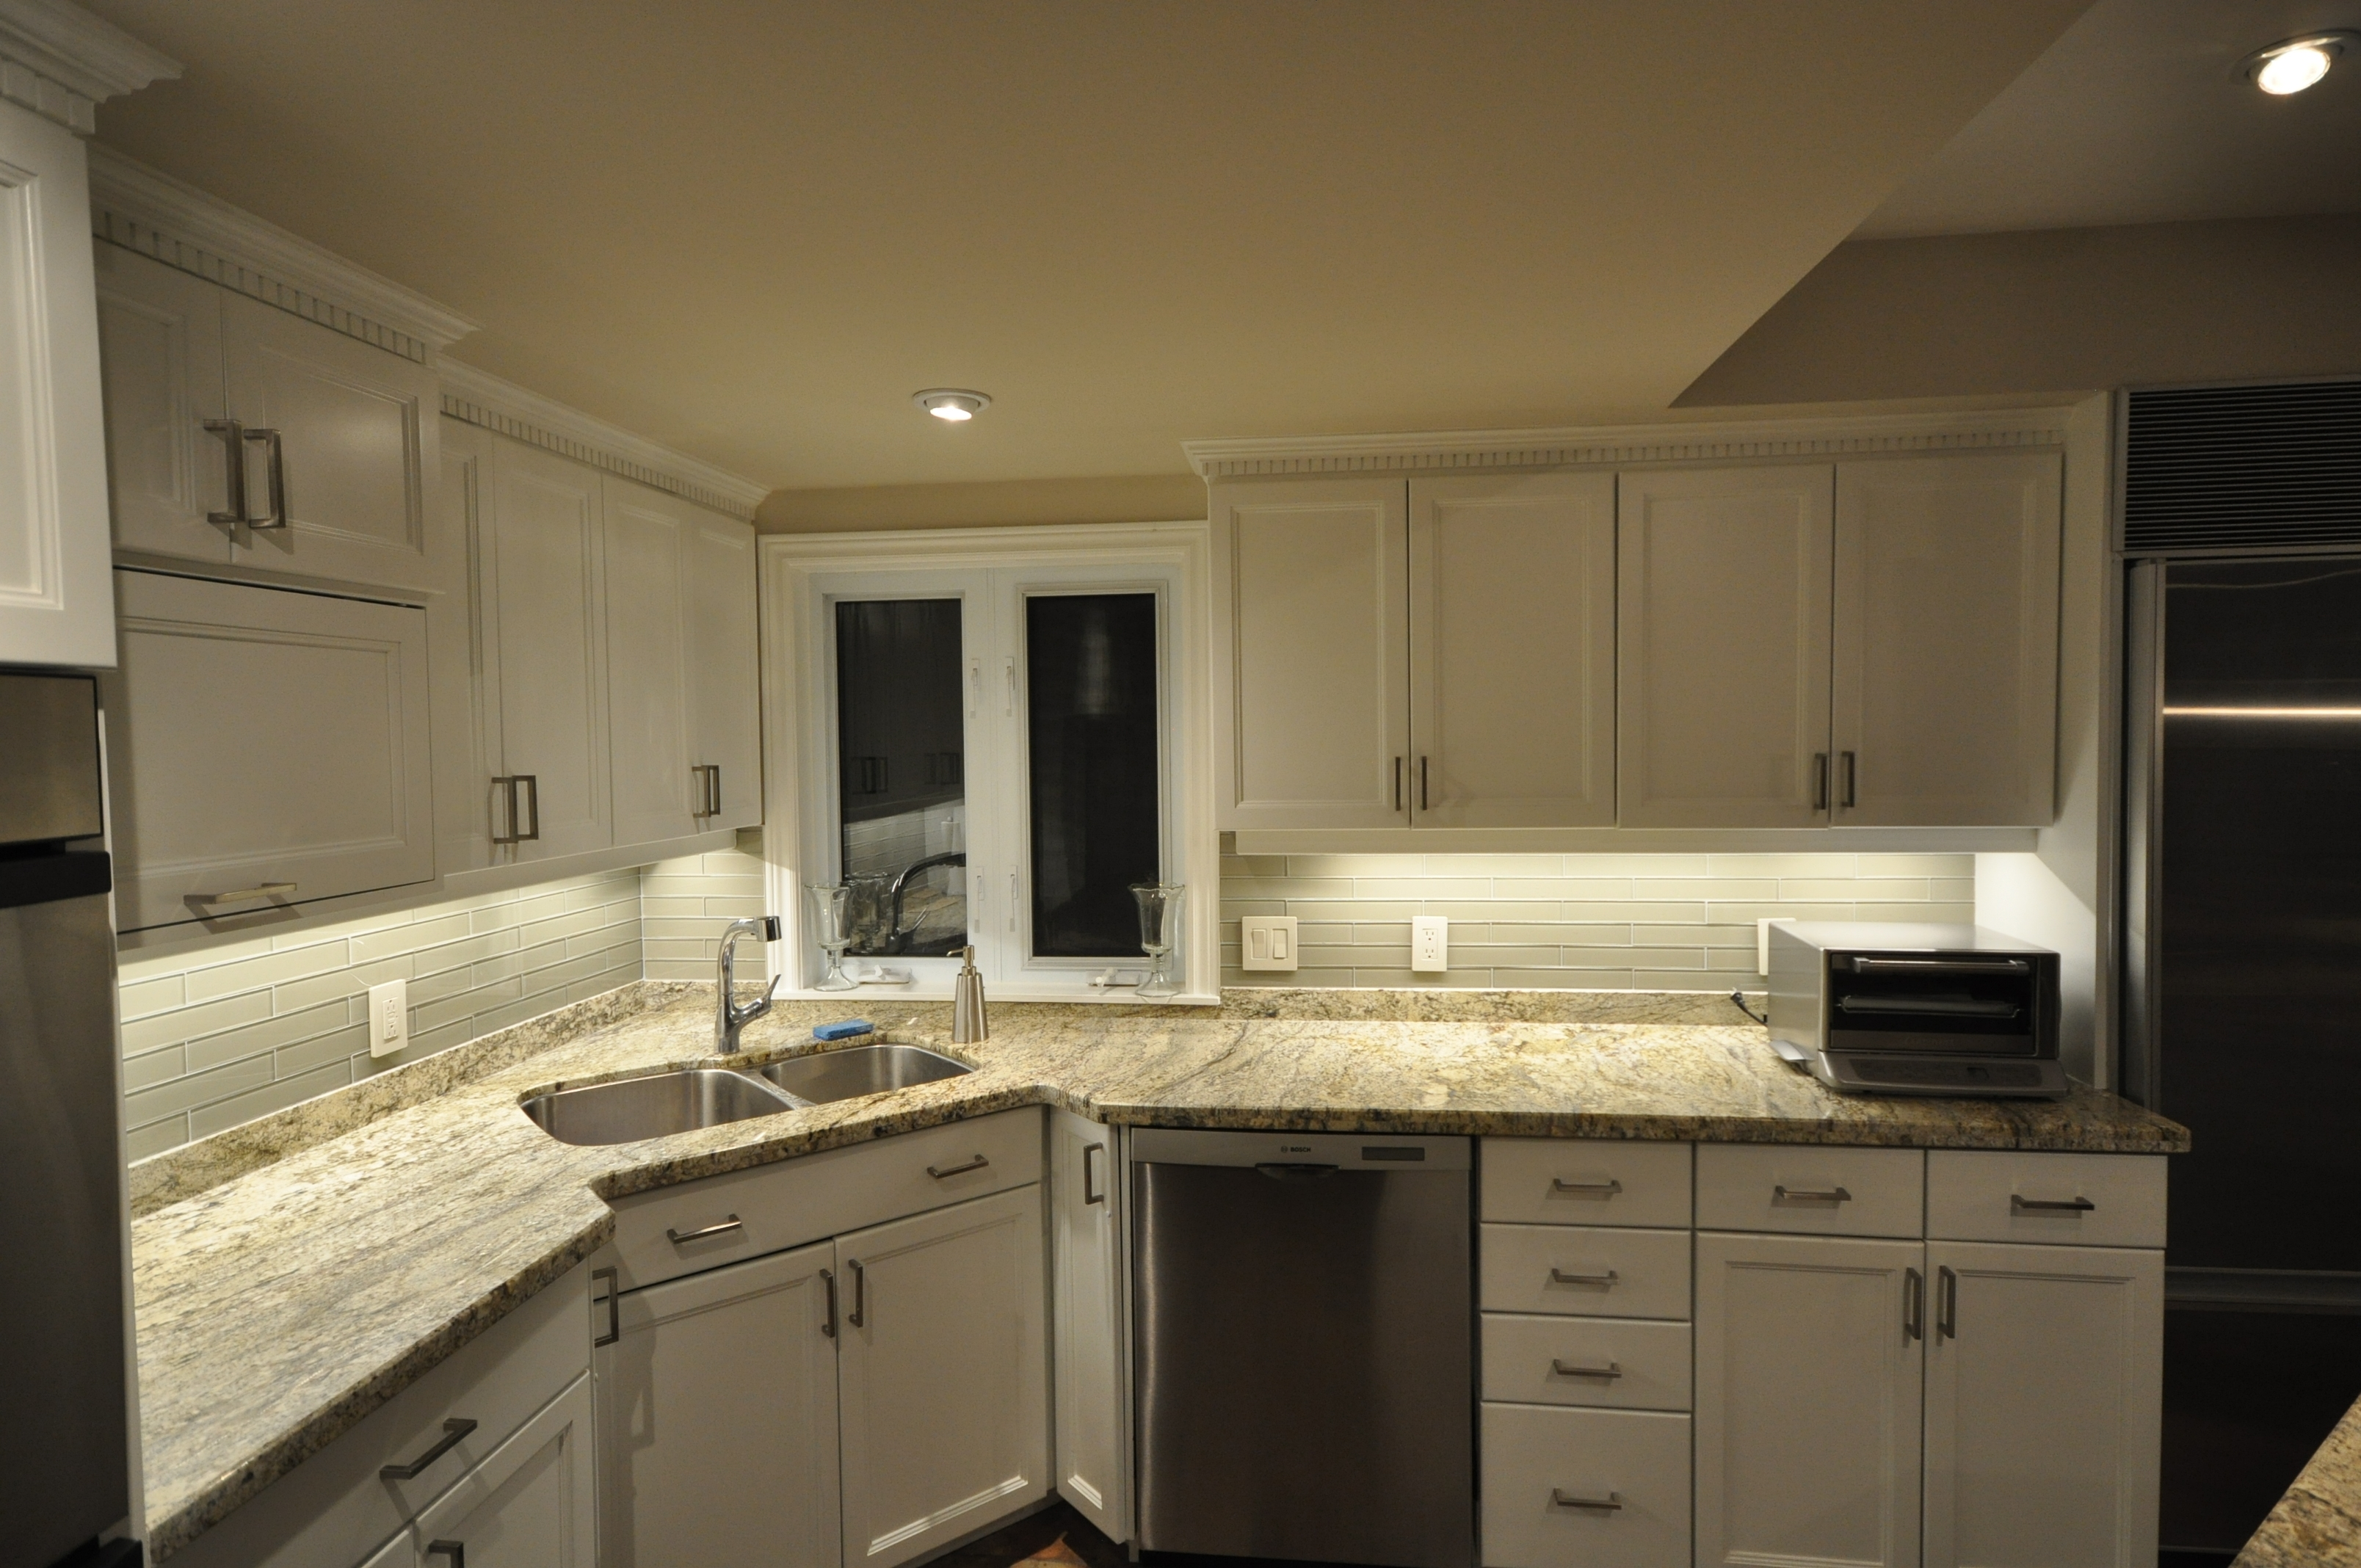 Permalink to Strip Lighting For Under Kitchen Cabinets